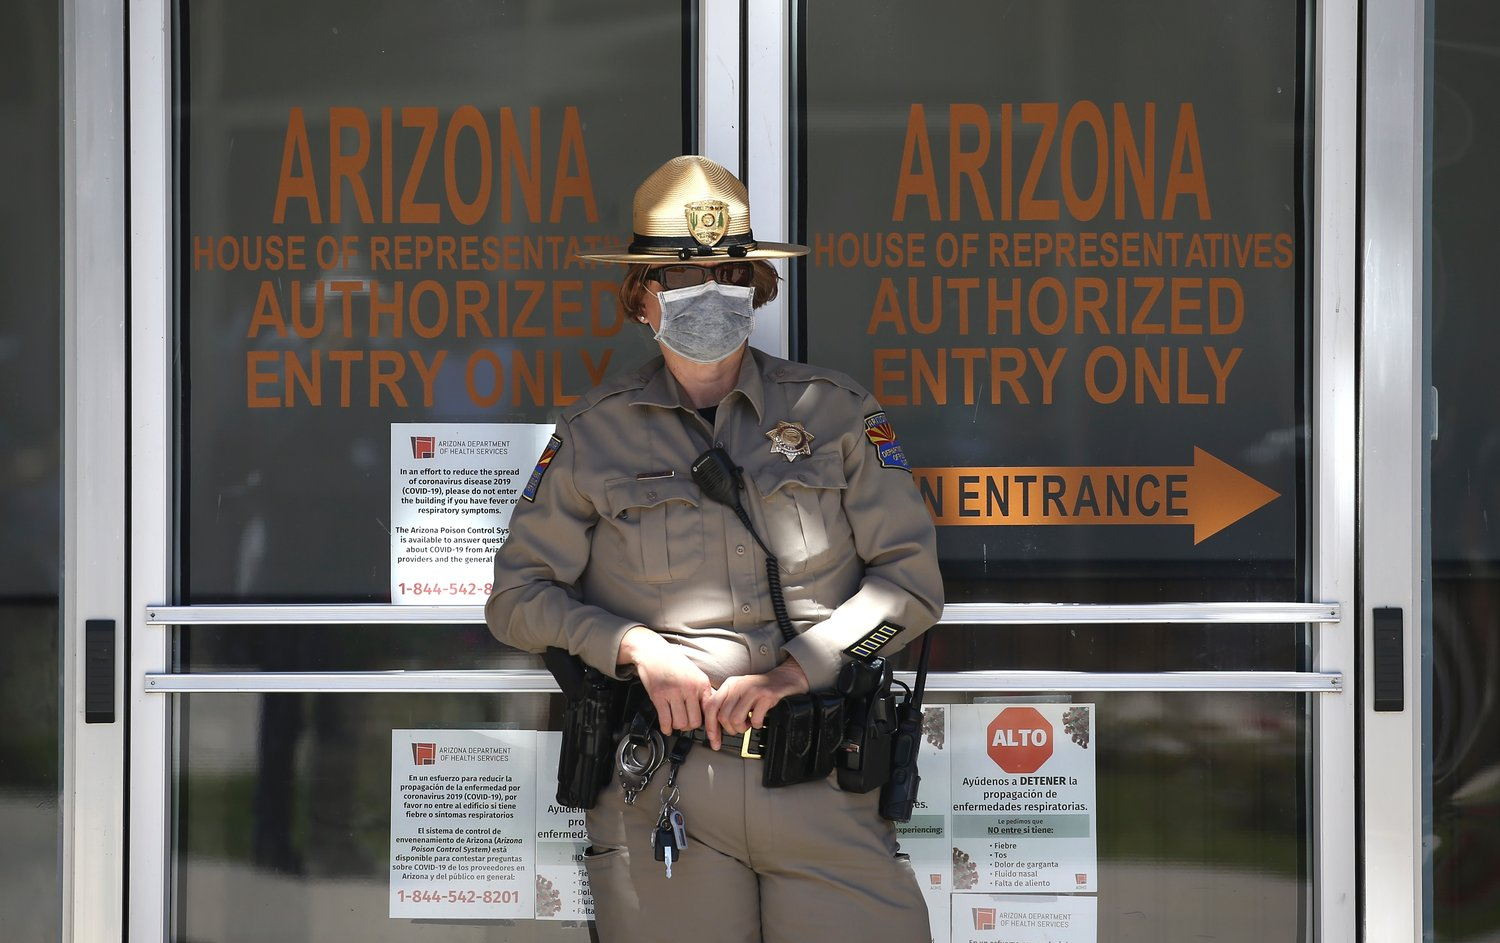 A Department of Public Safety police officer stands in front of the Arizona House of Representatives building as protesters rally at the state Capitol to 're-open' Arizona against the governor's stay-at-home order due to the coronavirus Monday, April 20, 2020, in Phoenix.